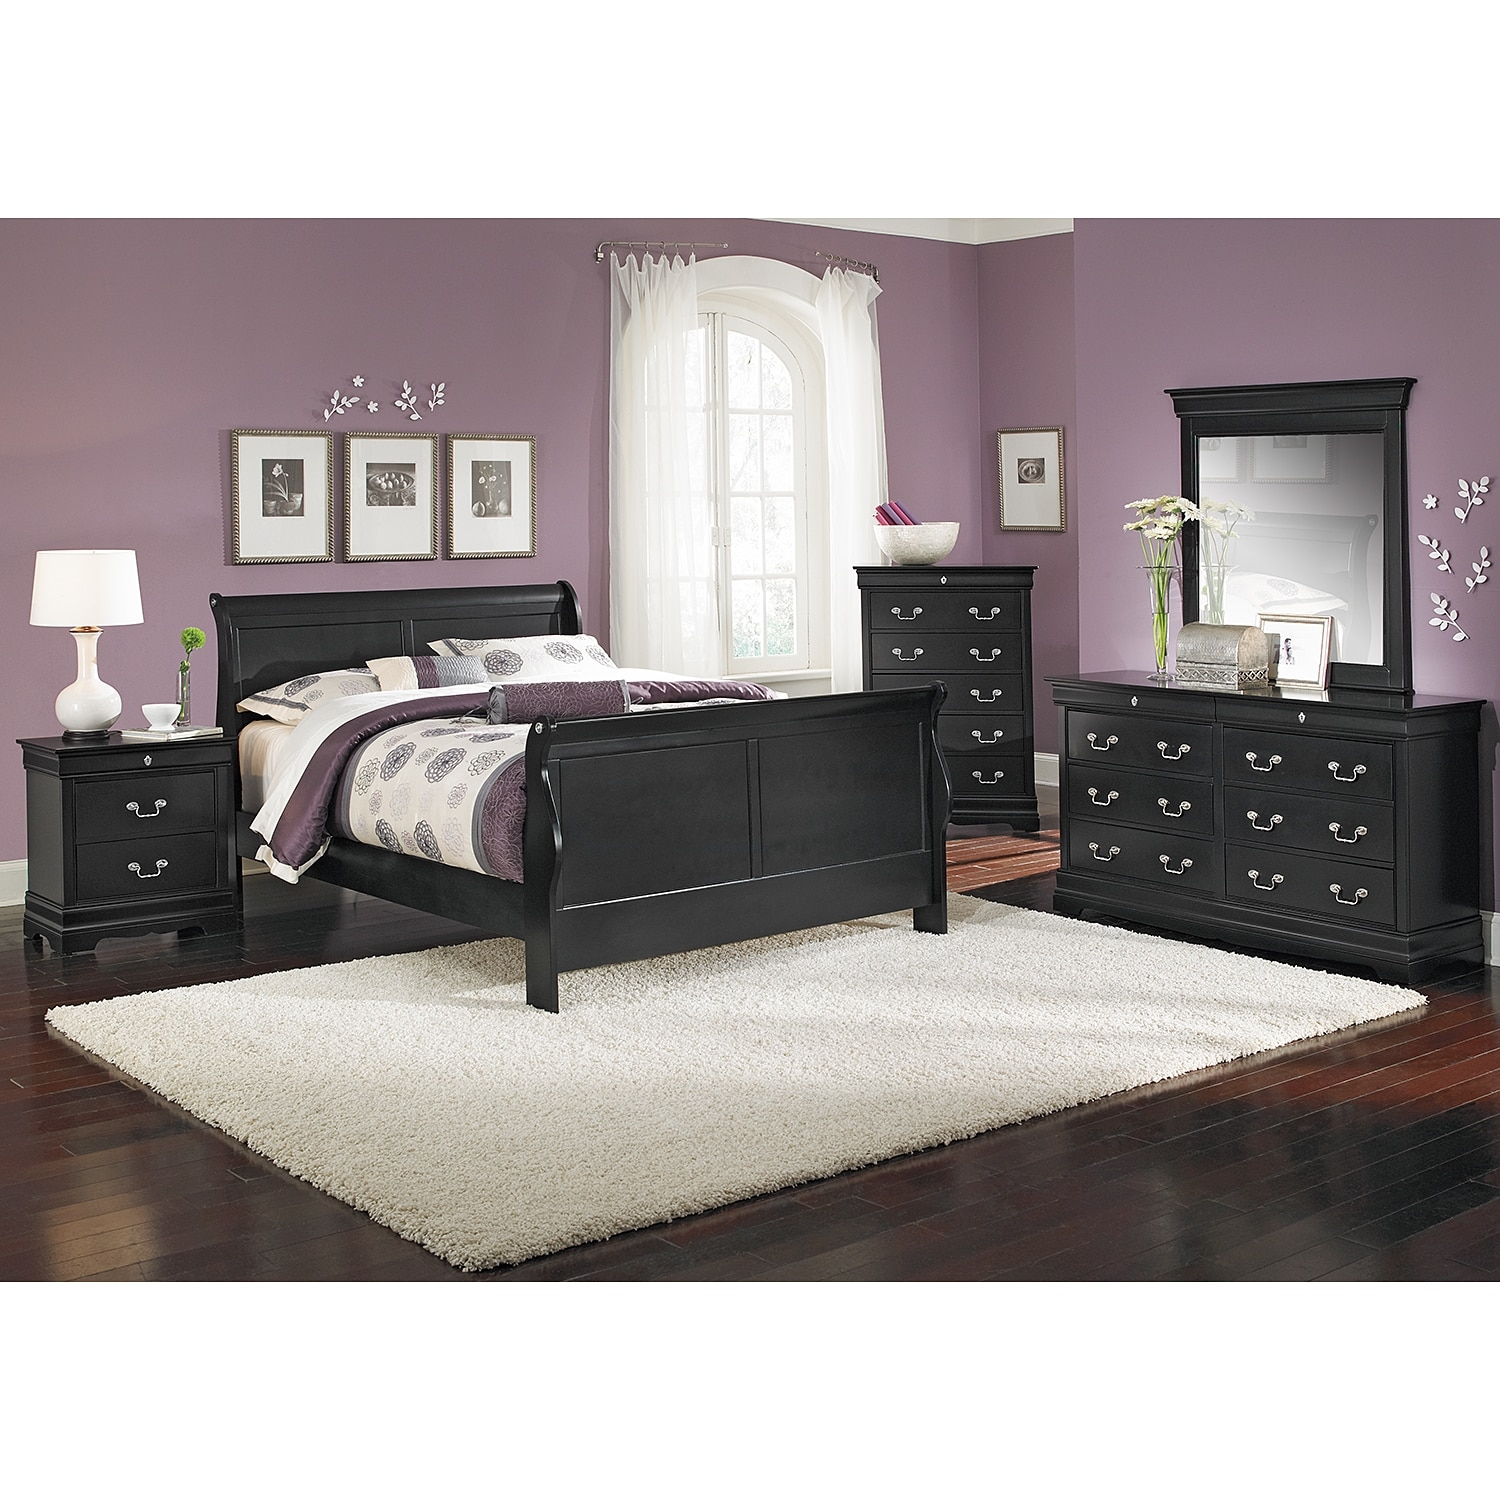 neo classic 7 piece king bedroom set black american signature furniture. Black Bedroom Furniture Sets. Home Design Ideas